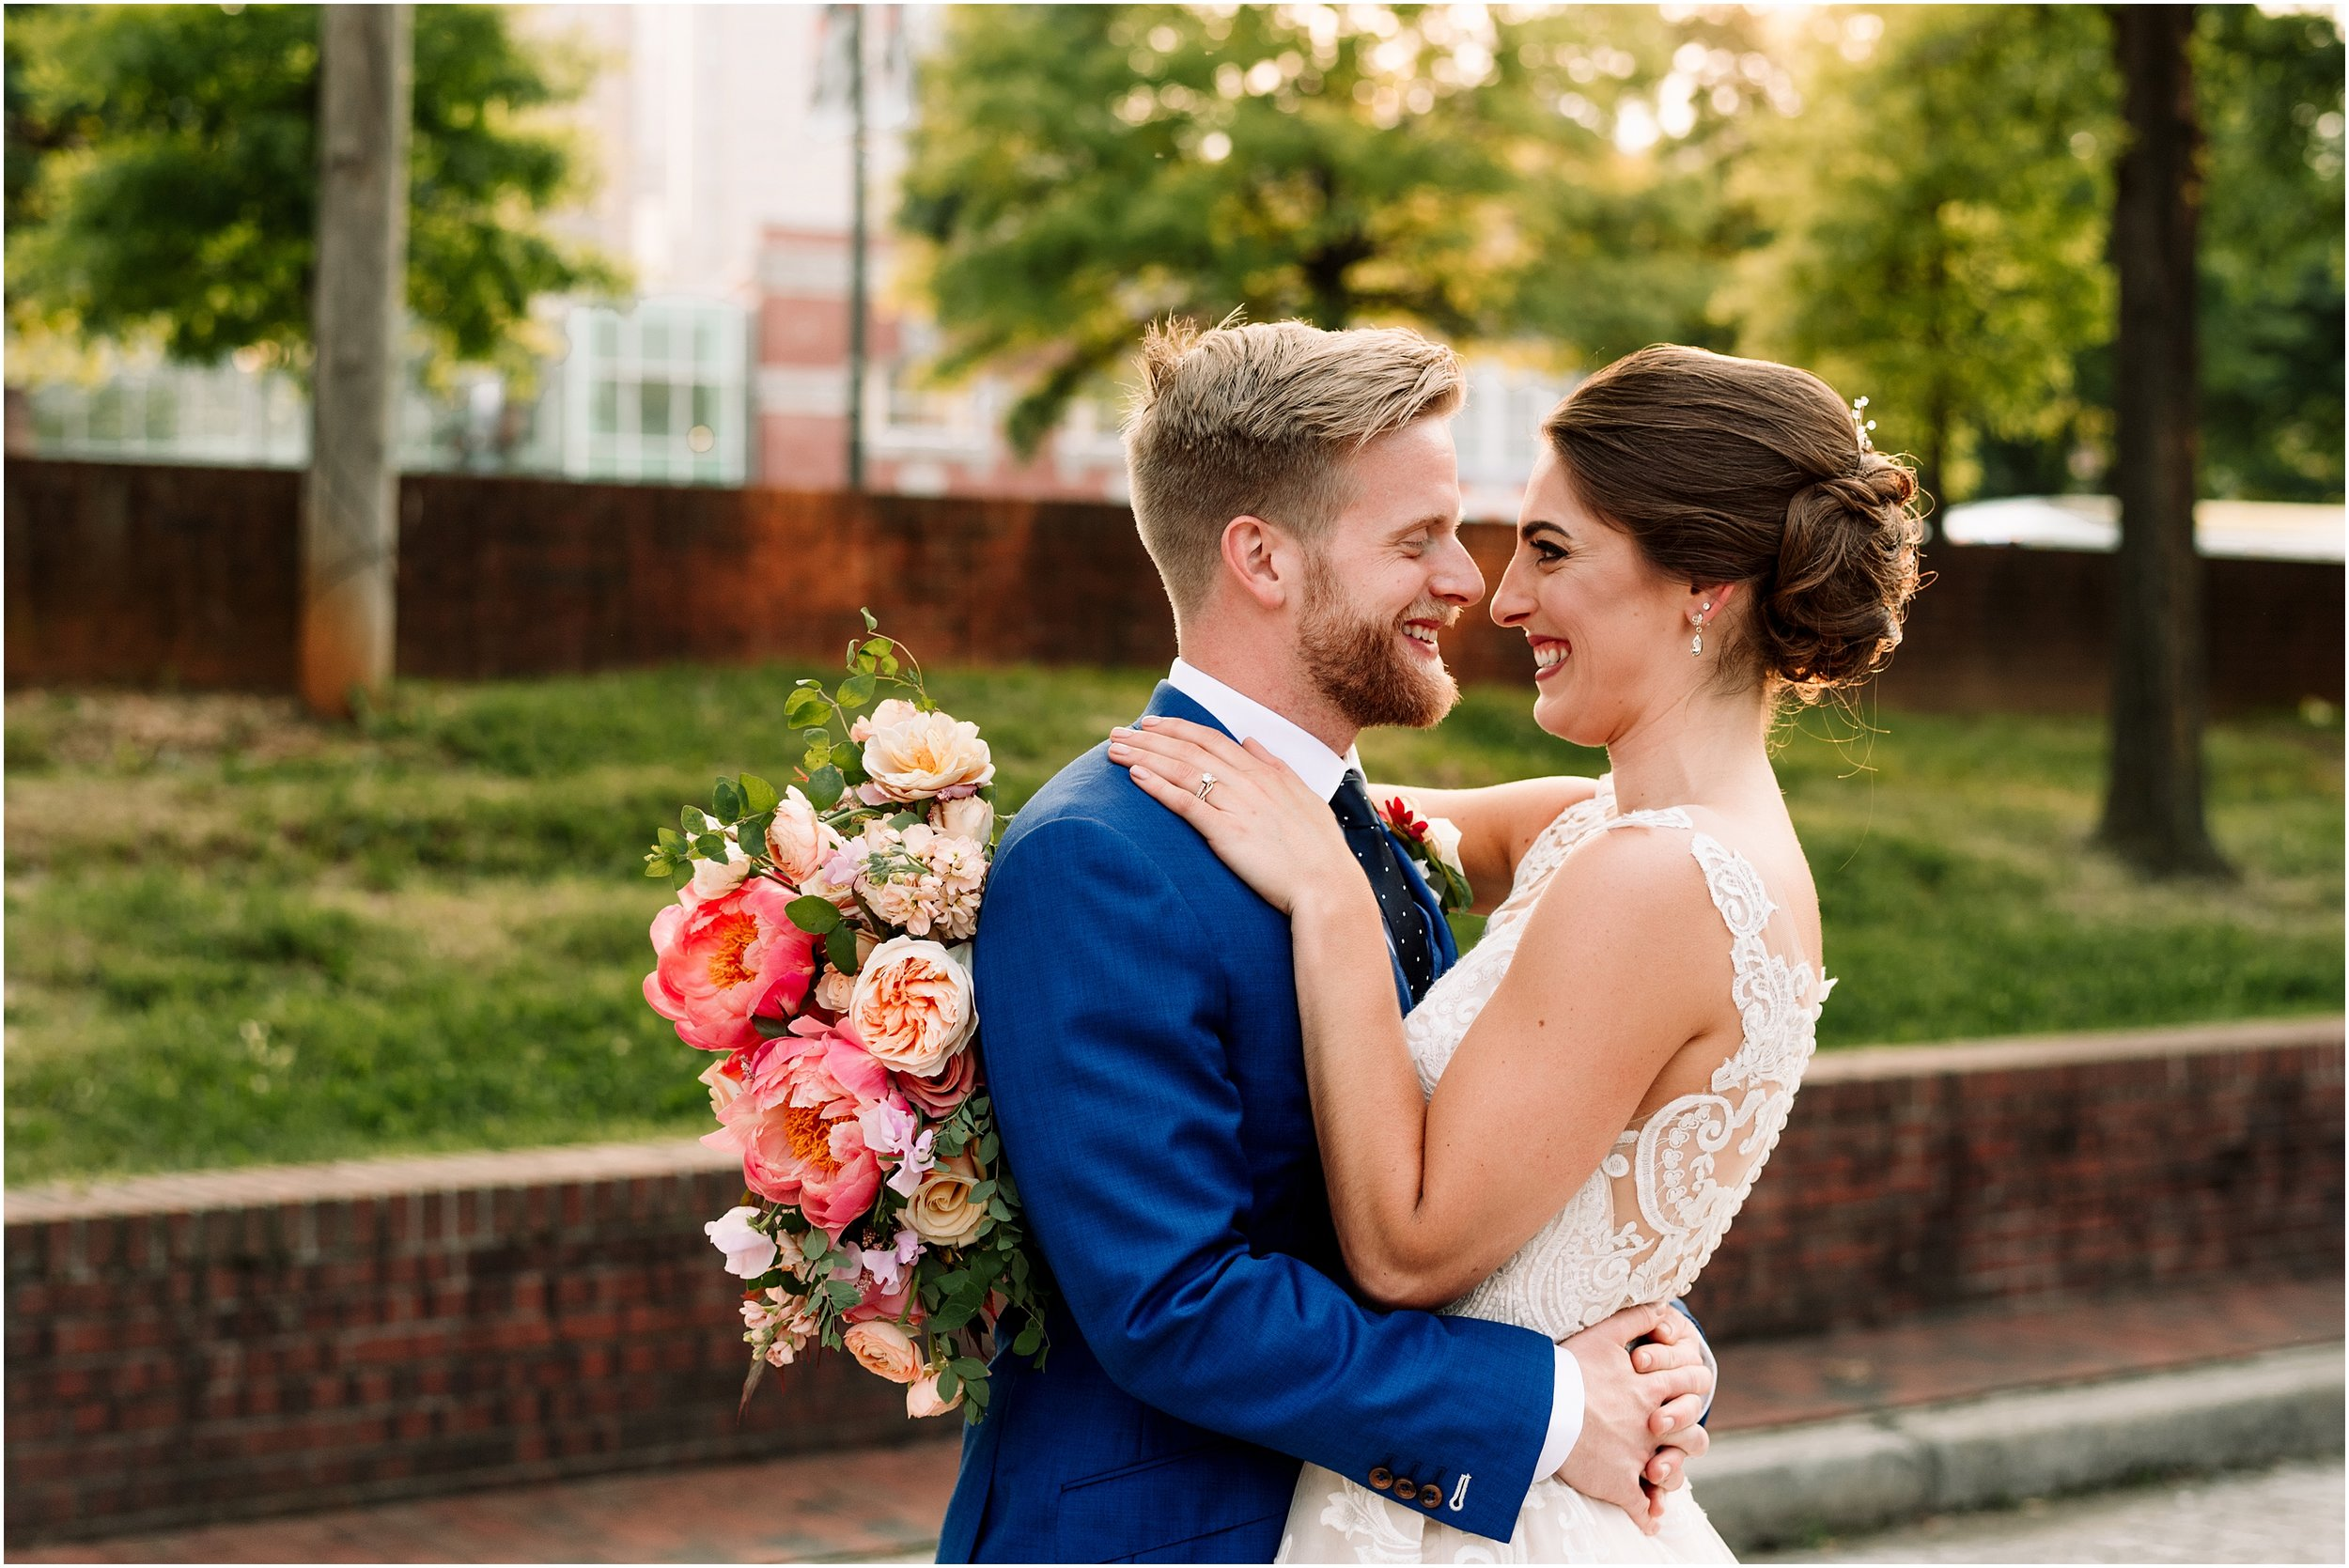 hannah leigh photography 1840s plaza wedding baltimore md_0099.jpg